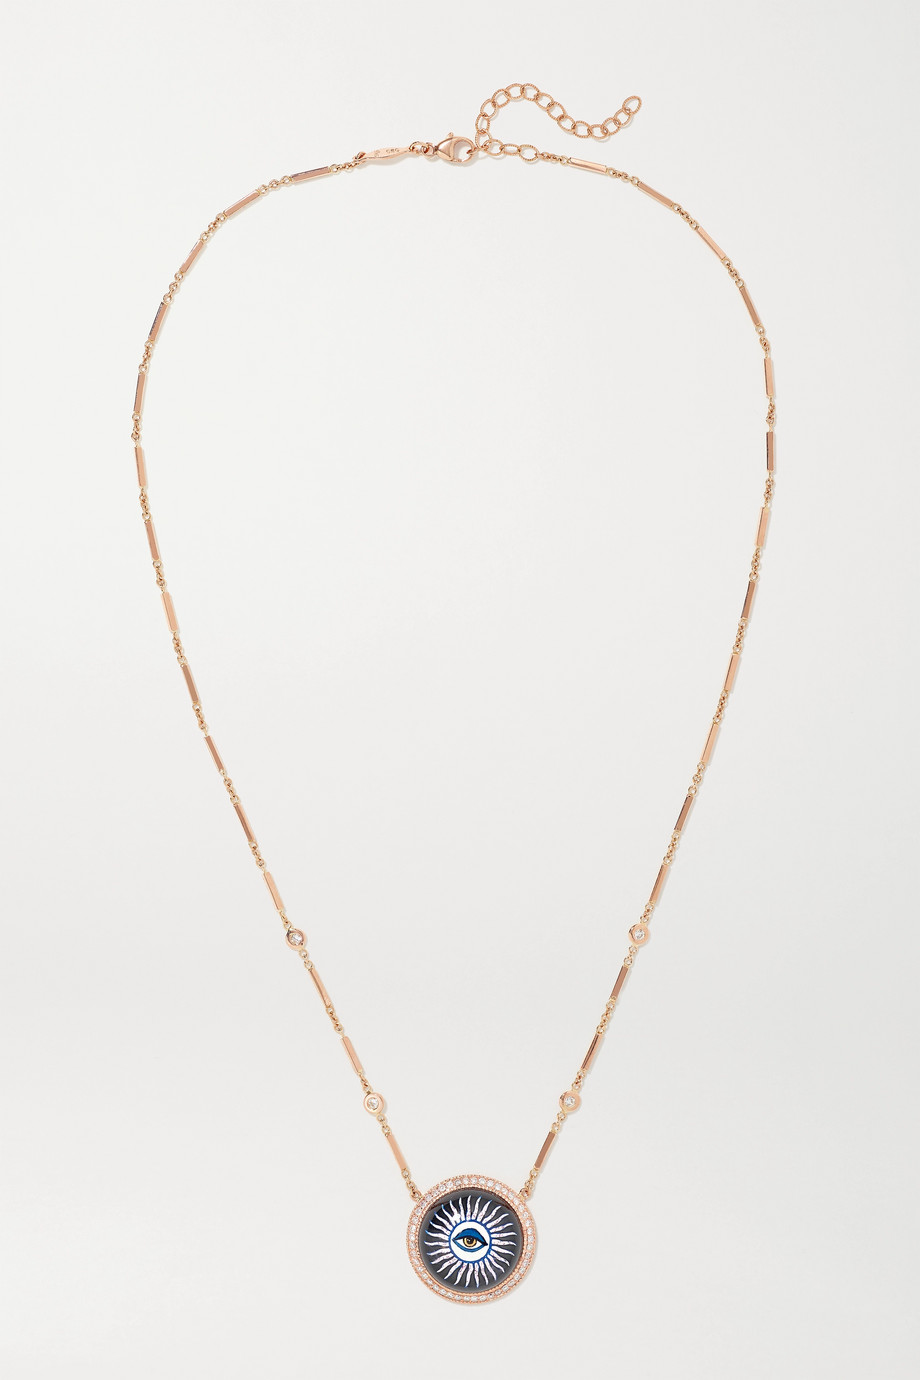 JACQUIE AICHE 14-karat rose gold, onyx and diamond necklace